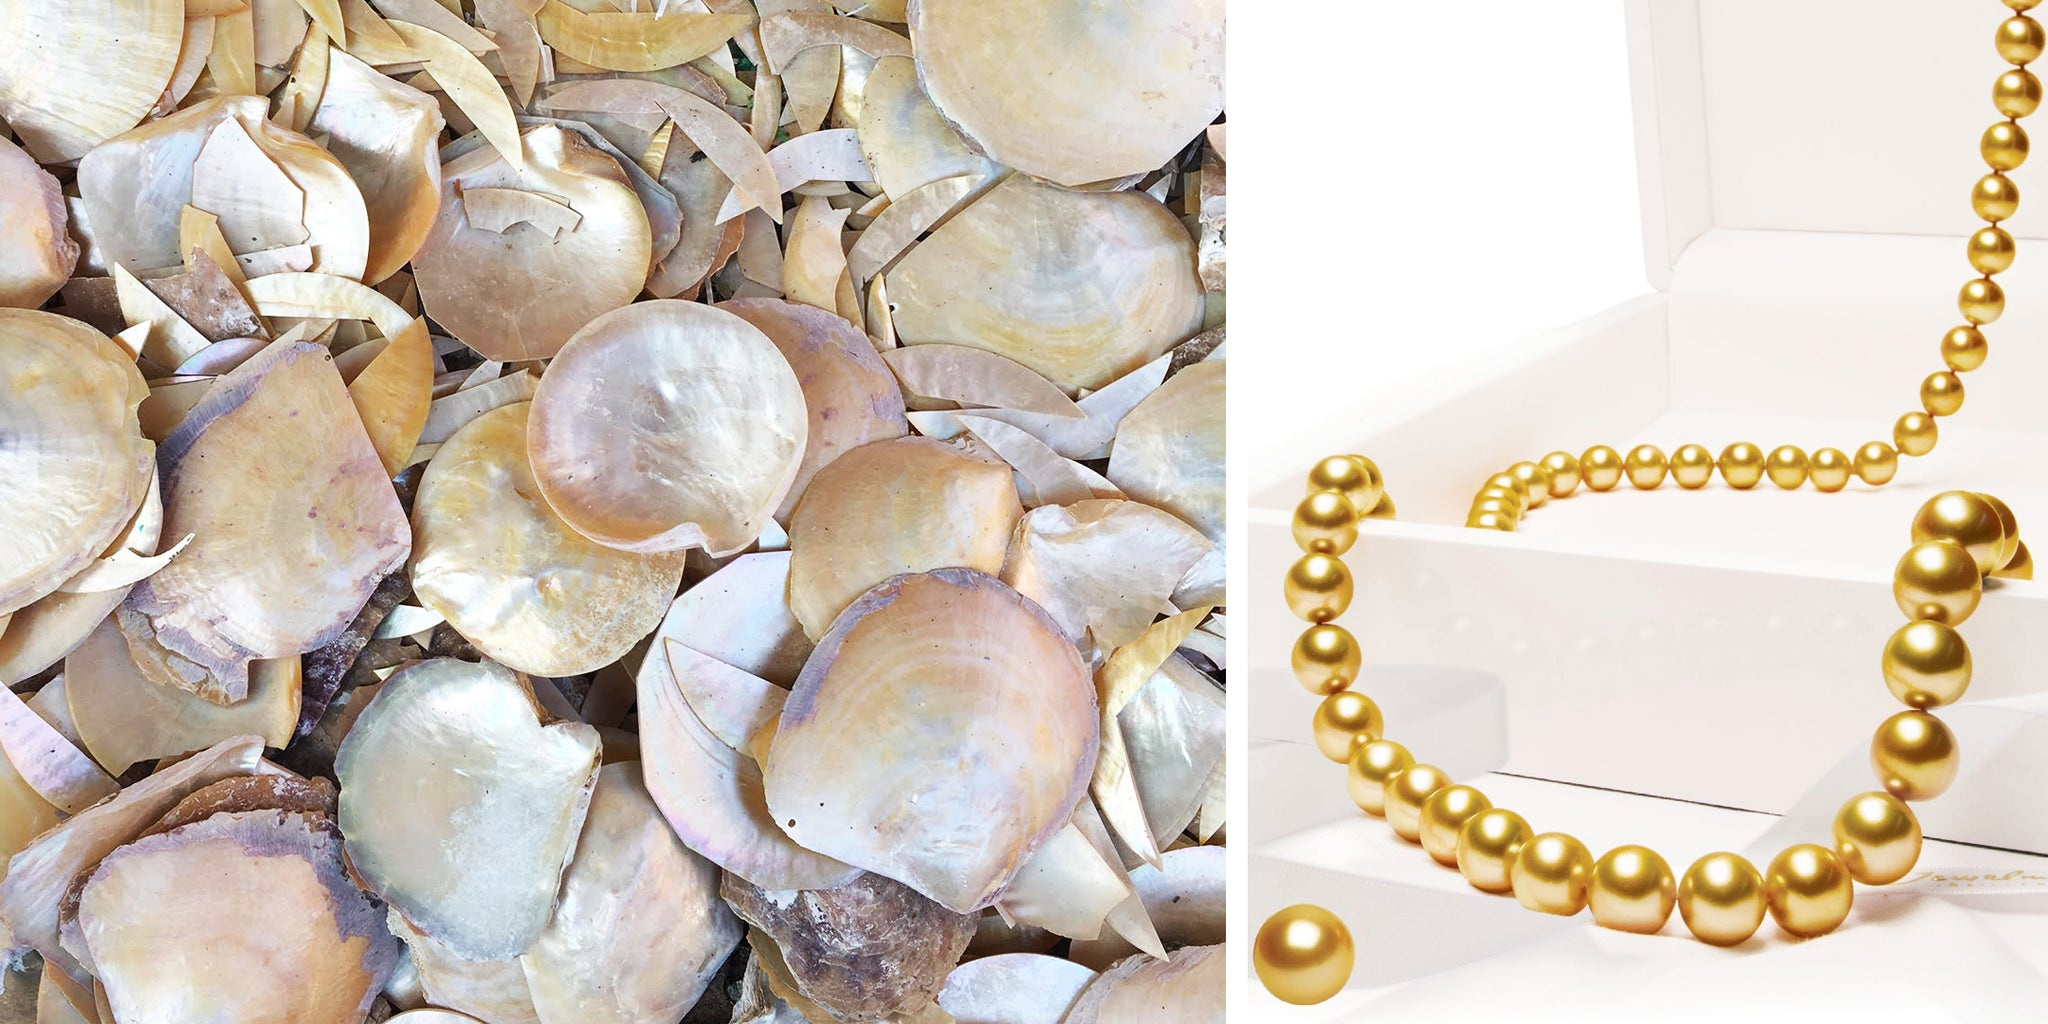 5cce56e26 Once the pearls are harvested, the shells are discarded or sold to be used  in other industries. Fun fact: this shell is featured at the back of the  one ...